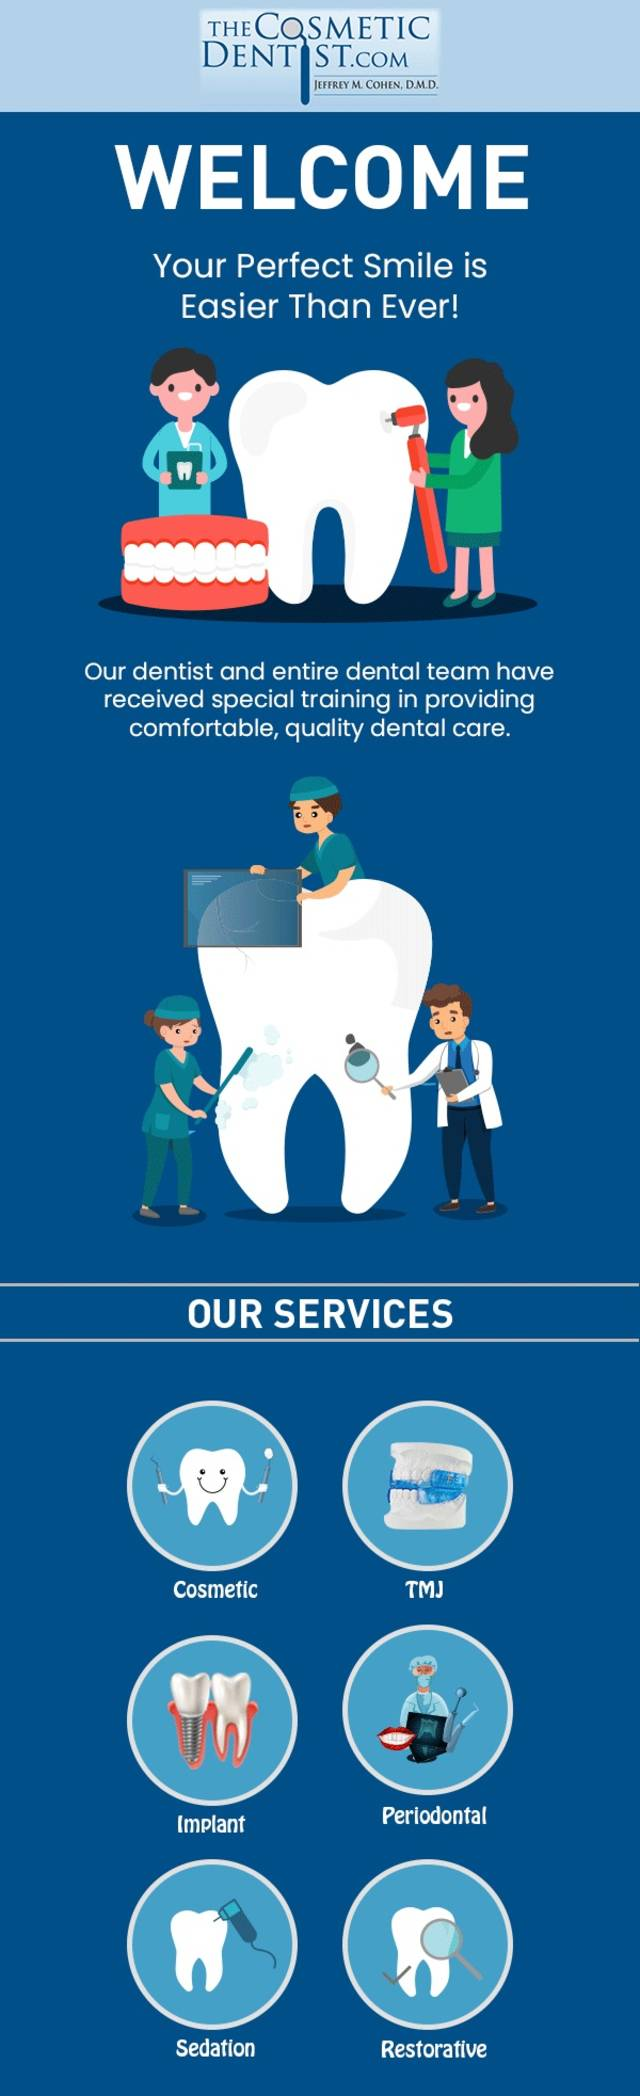 Jeffrey cohen  dmd   a trusted family dentist in west palm beach  fl